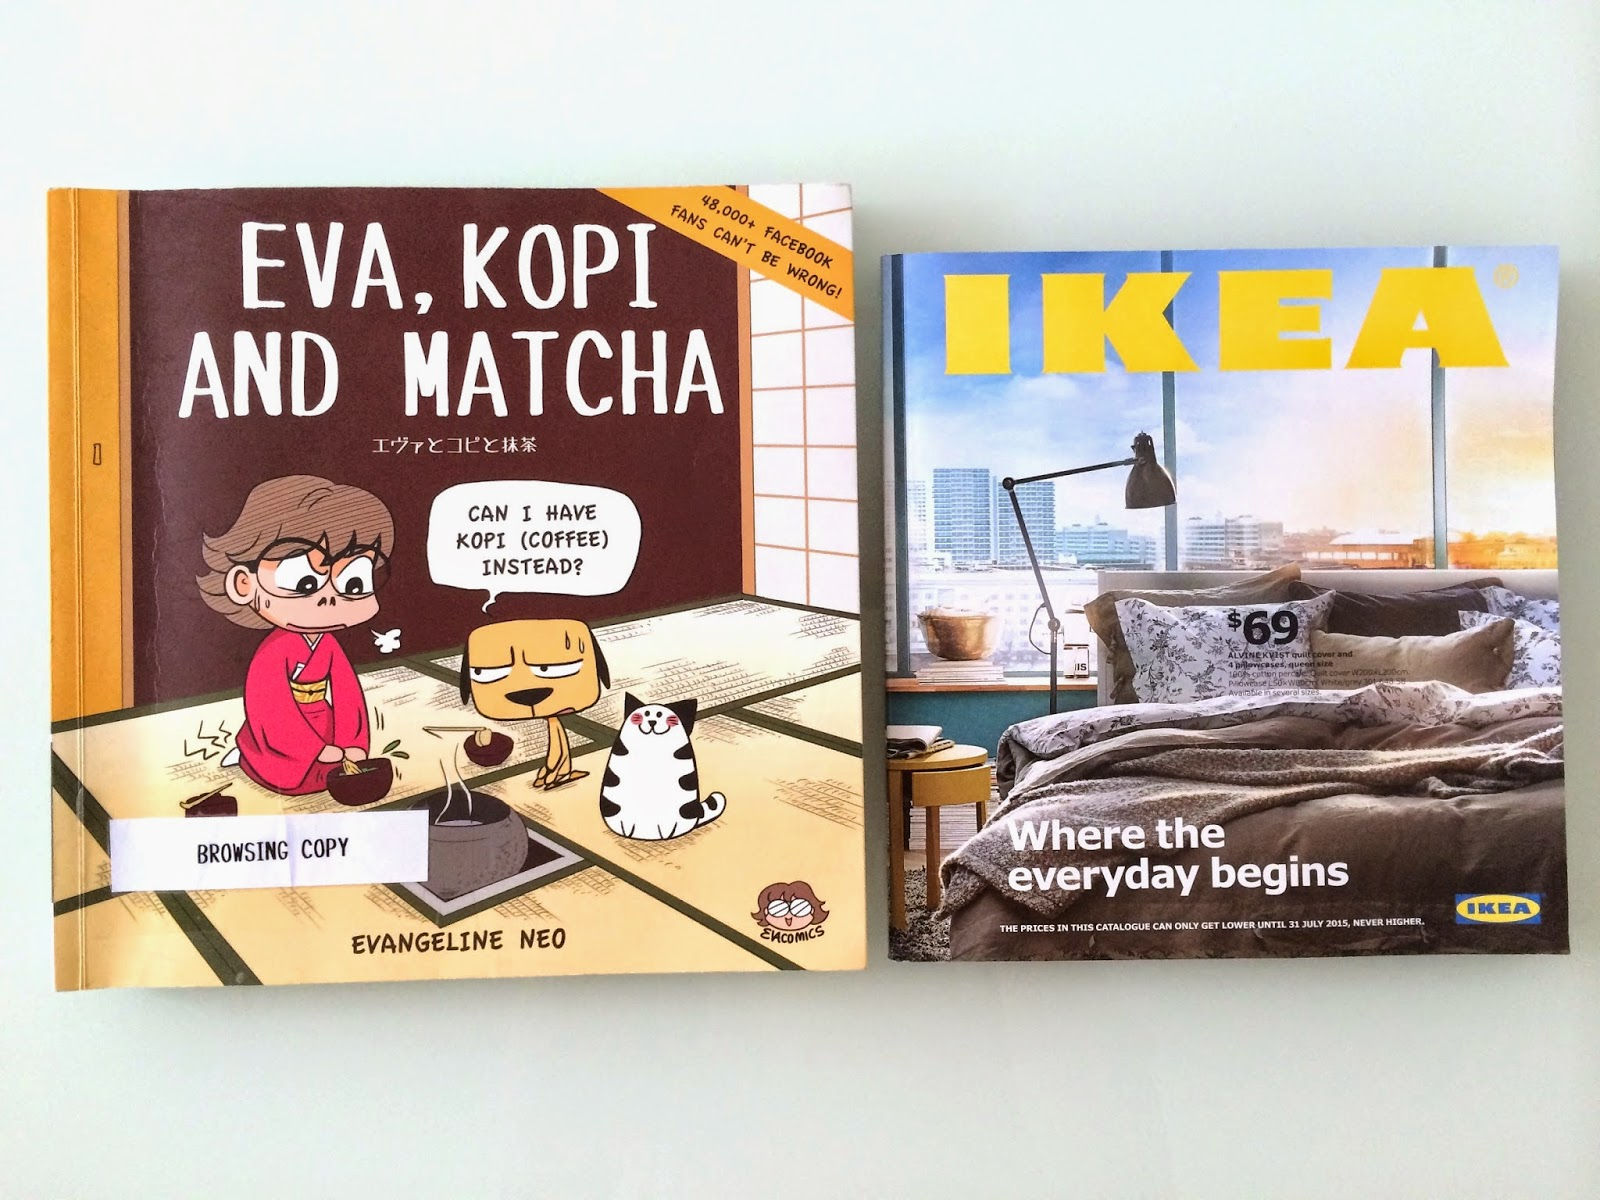 Evacomics comicbookbook™ VS Ikea bookbook